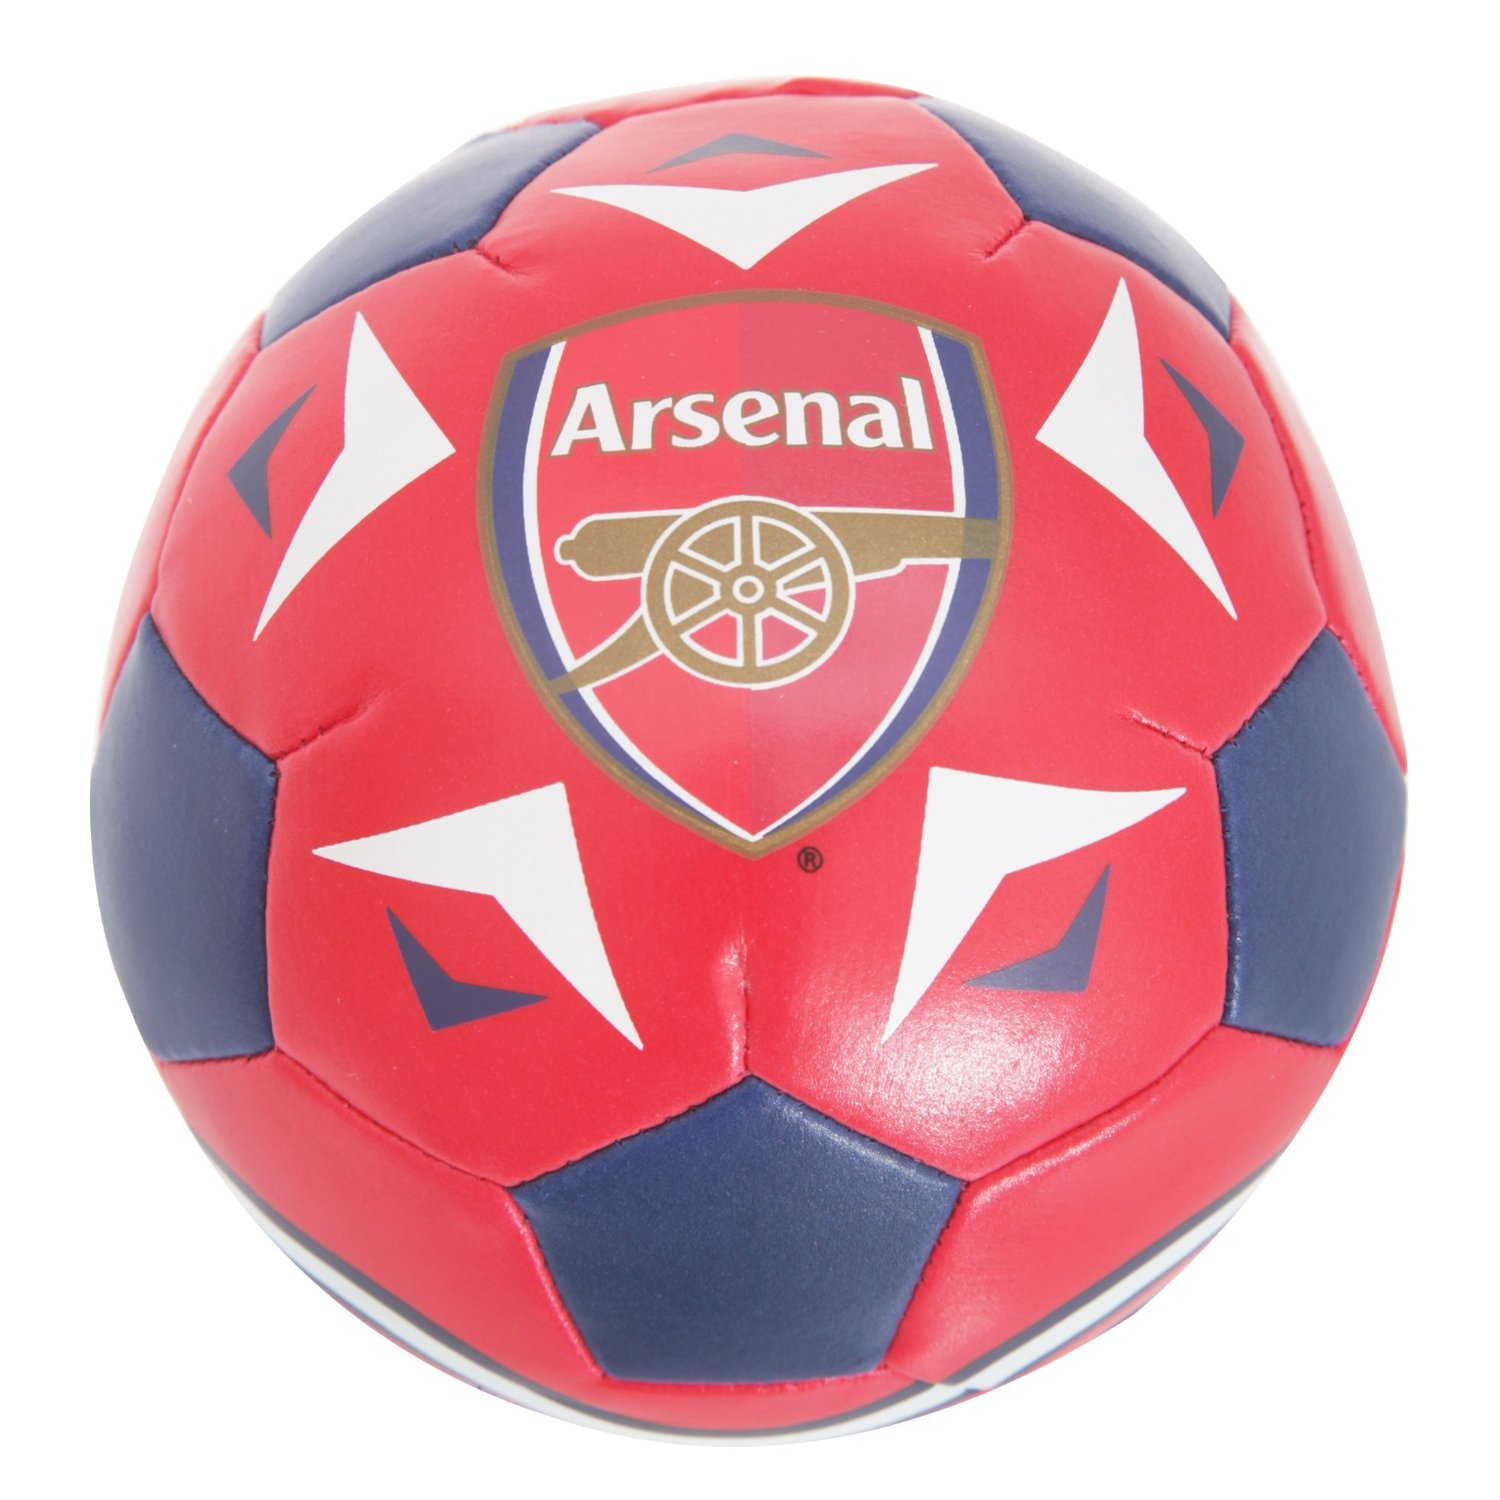 Arsenal FC Official Football Crest Mini Soft Ball